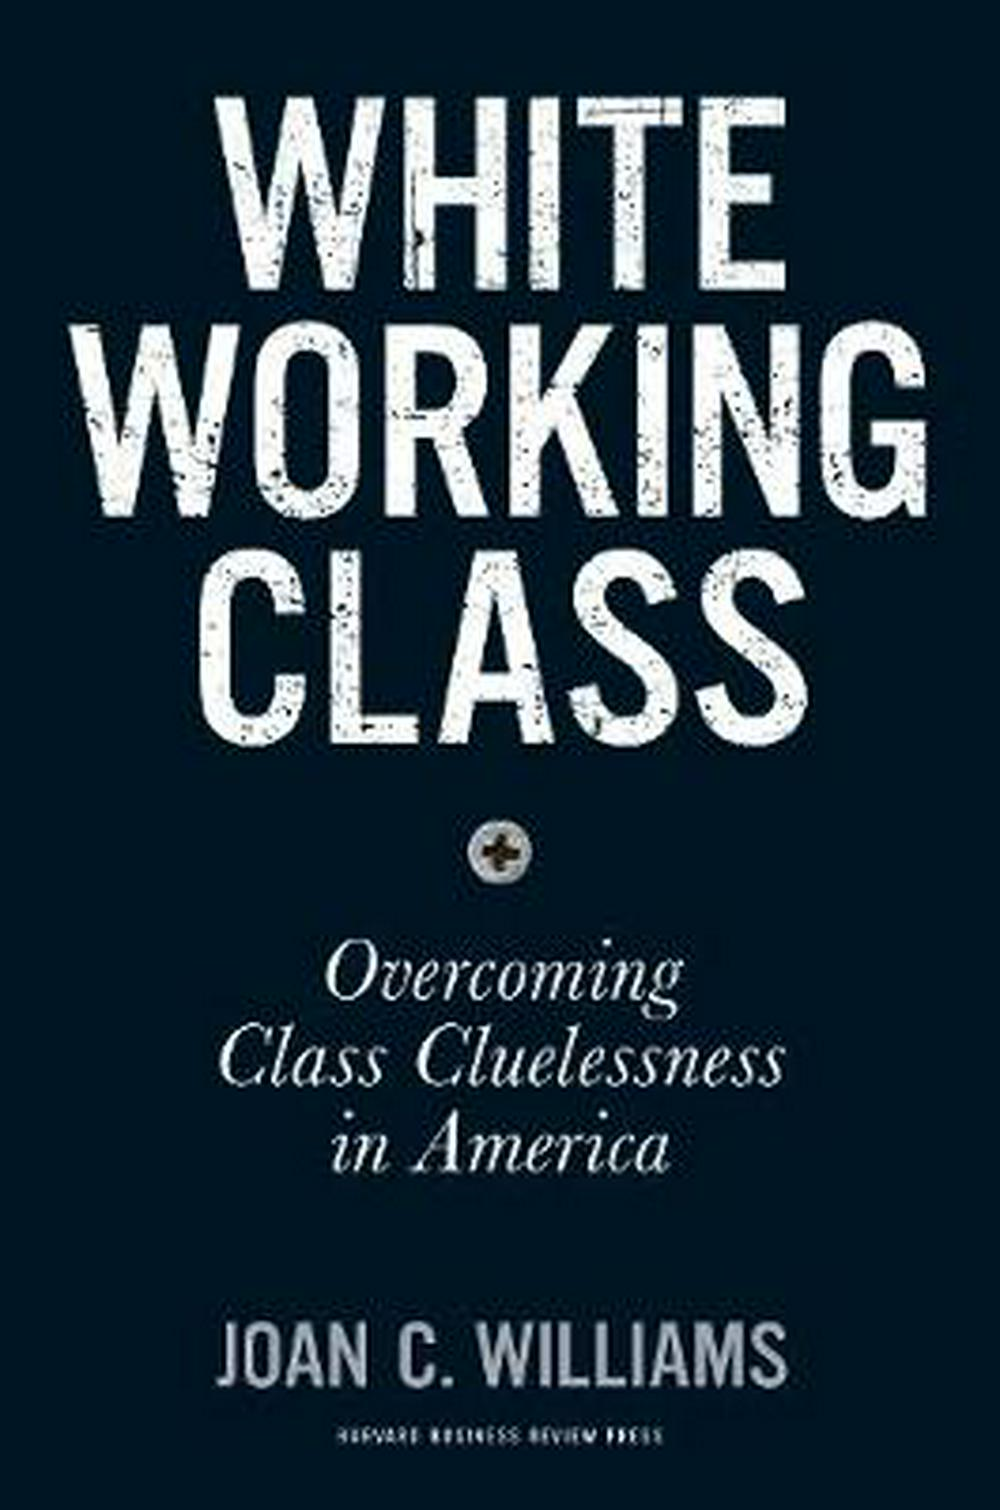 White Working Class: Overcoming Class Cluelessness in America by Joan C. Williams, ISBN: 9781633693784